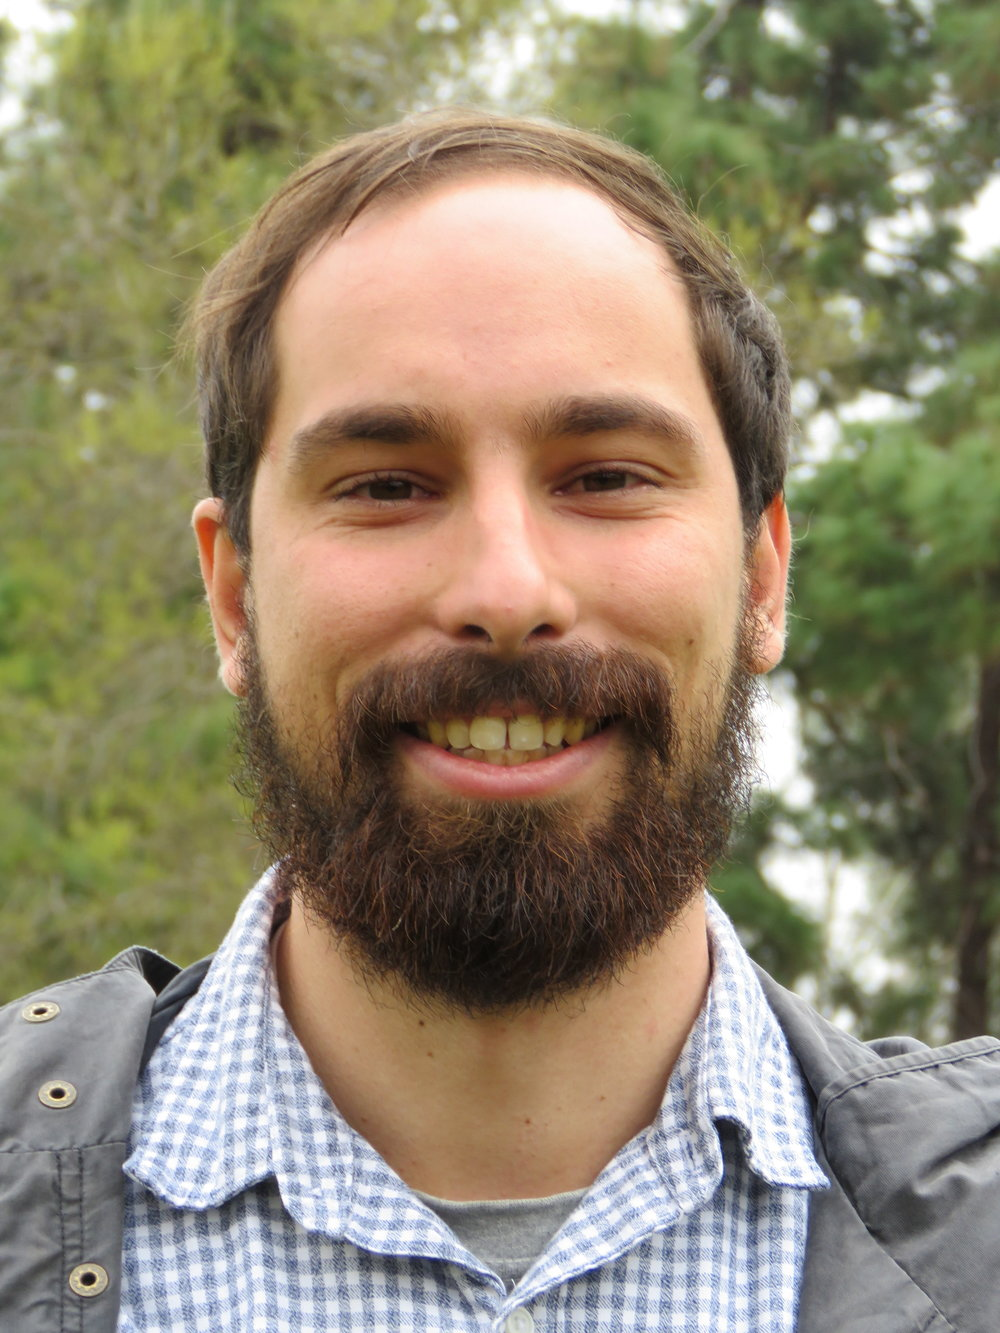 Joachim M. Surm  (postdoc) joachim.surm at mail.huji.ac.il  In December 2018 Joachim submitted his PhD thesis to the Queensland University of Technology (QUT) in Brisbane, Australia. At QUT Joachim worked on the molecular evolution of toxins and other proteins in sea anemones. He joined our group in February 2019 and he studies the evolution of toxins and toxin-like proteins in  Nematostella  as well as their variation between populations.